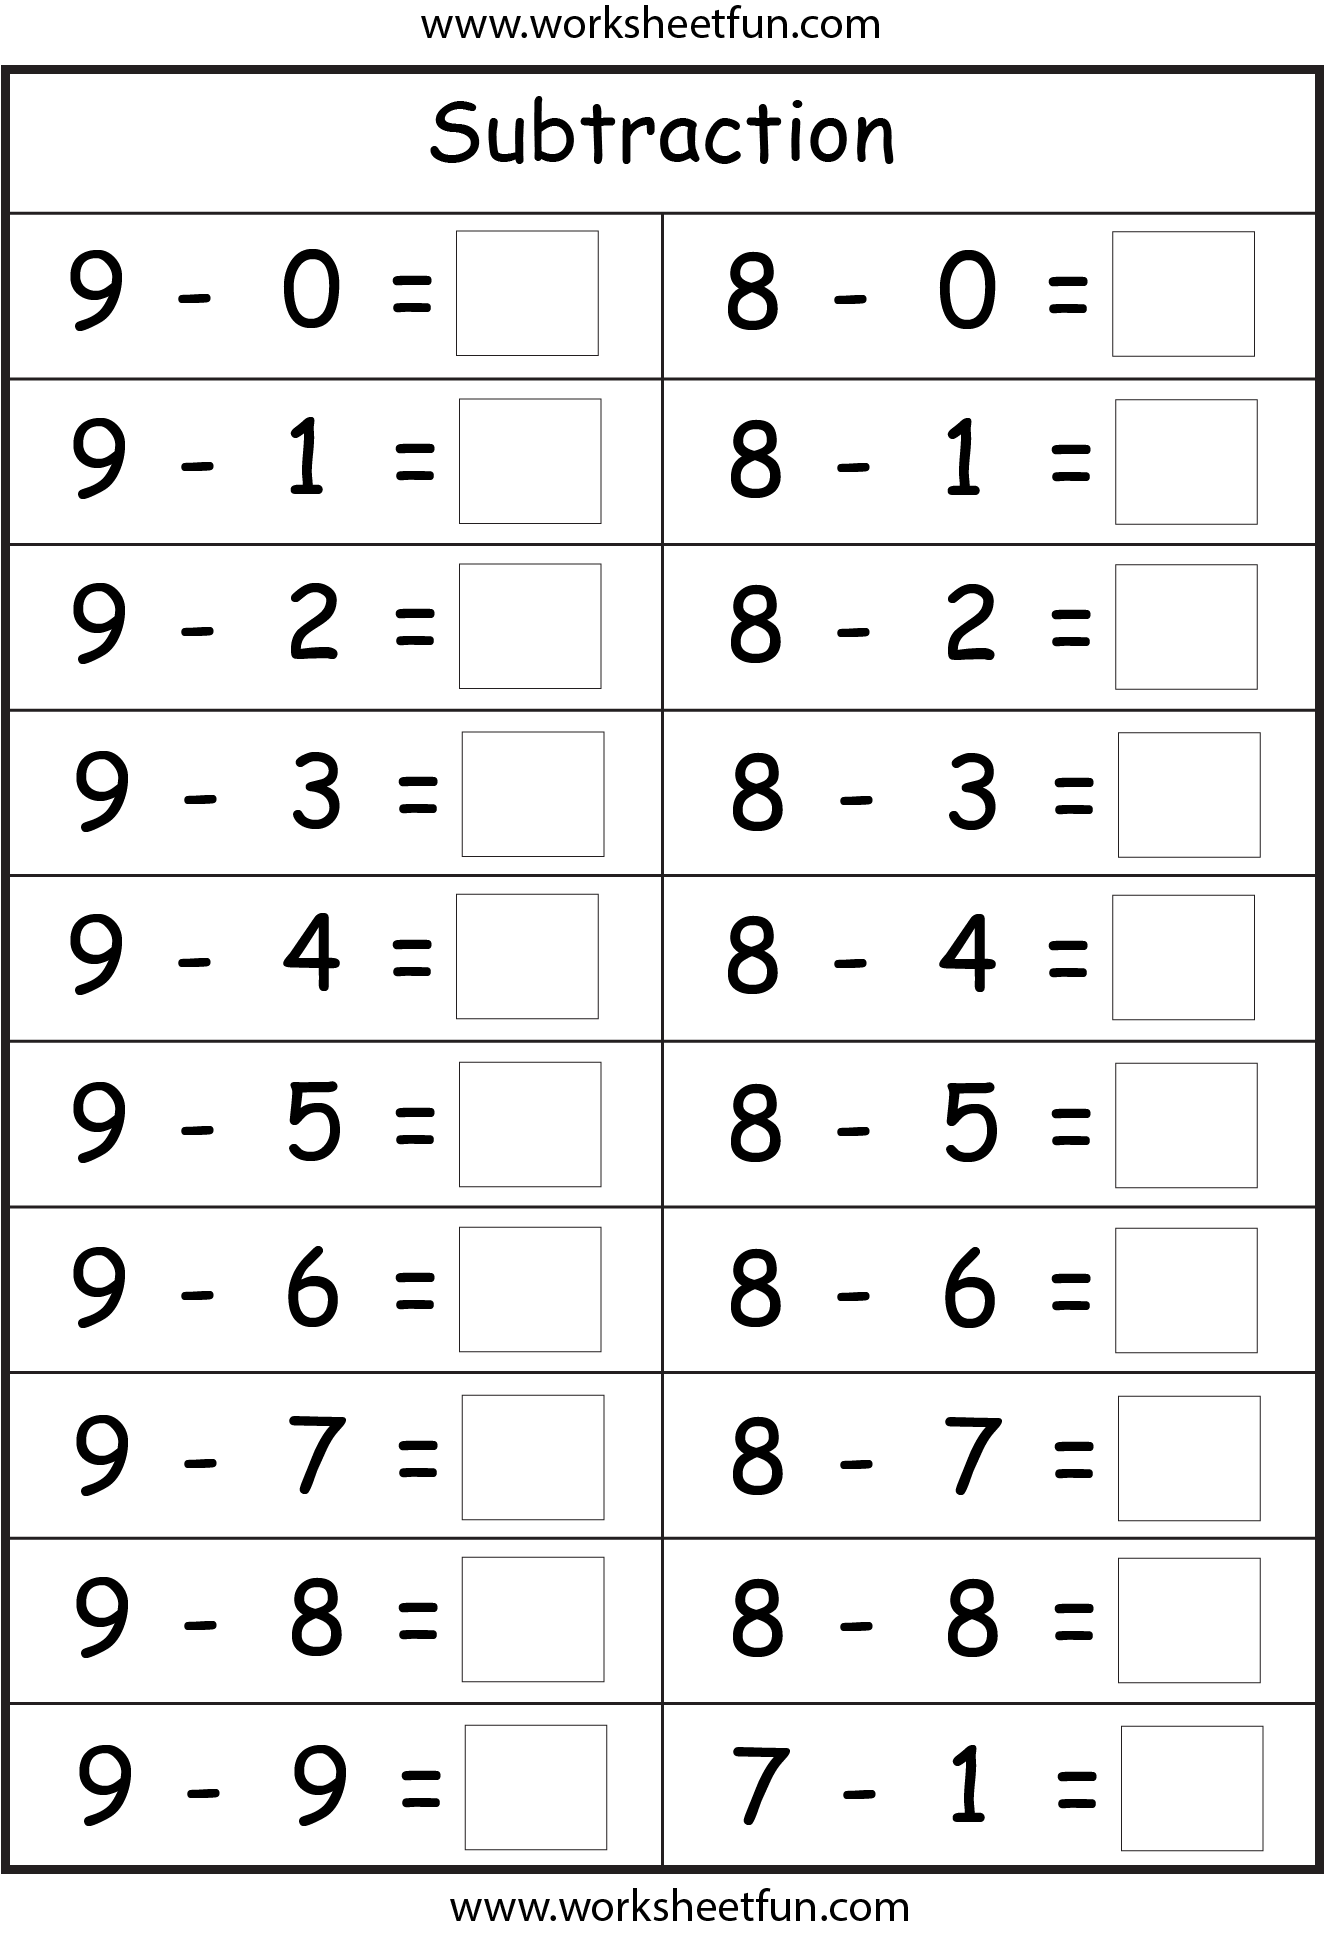 Subtraction - 4 Worksheets | Printable Worksheets | Pinterest ...